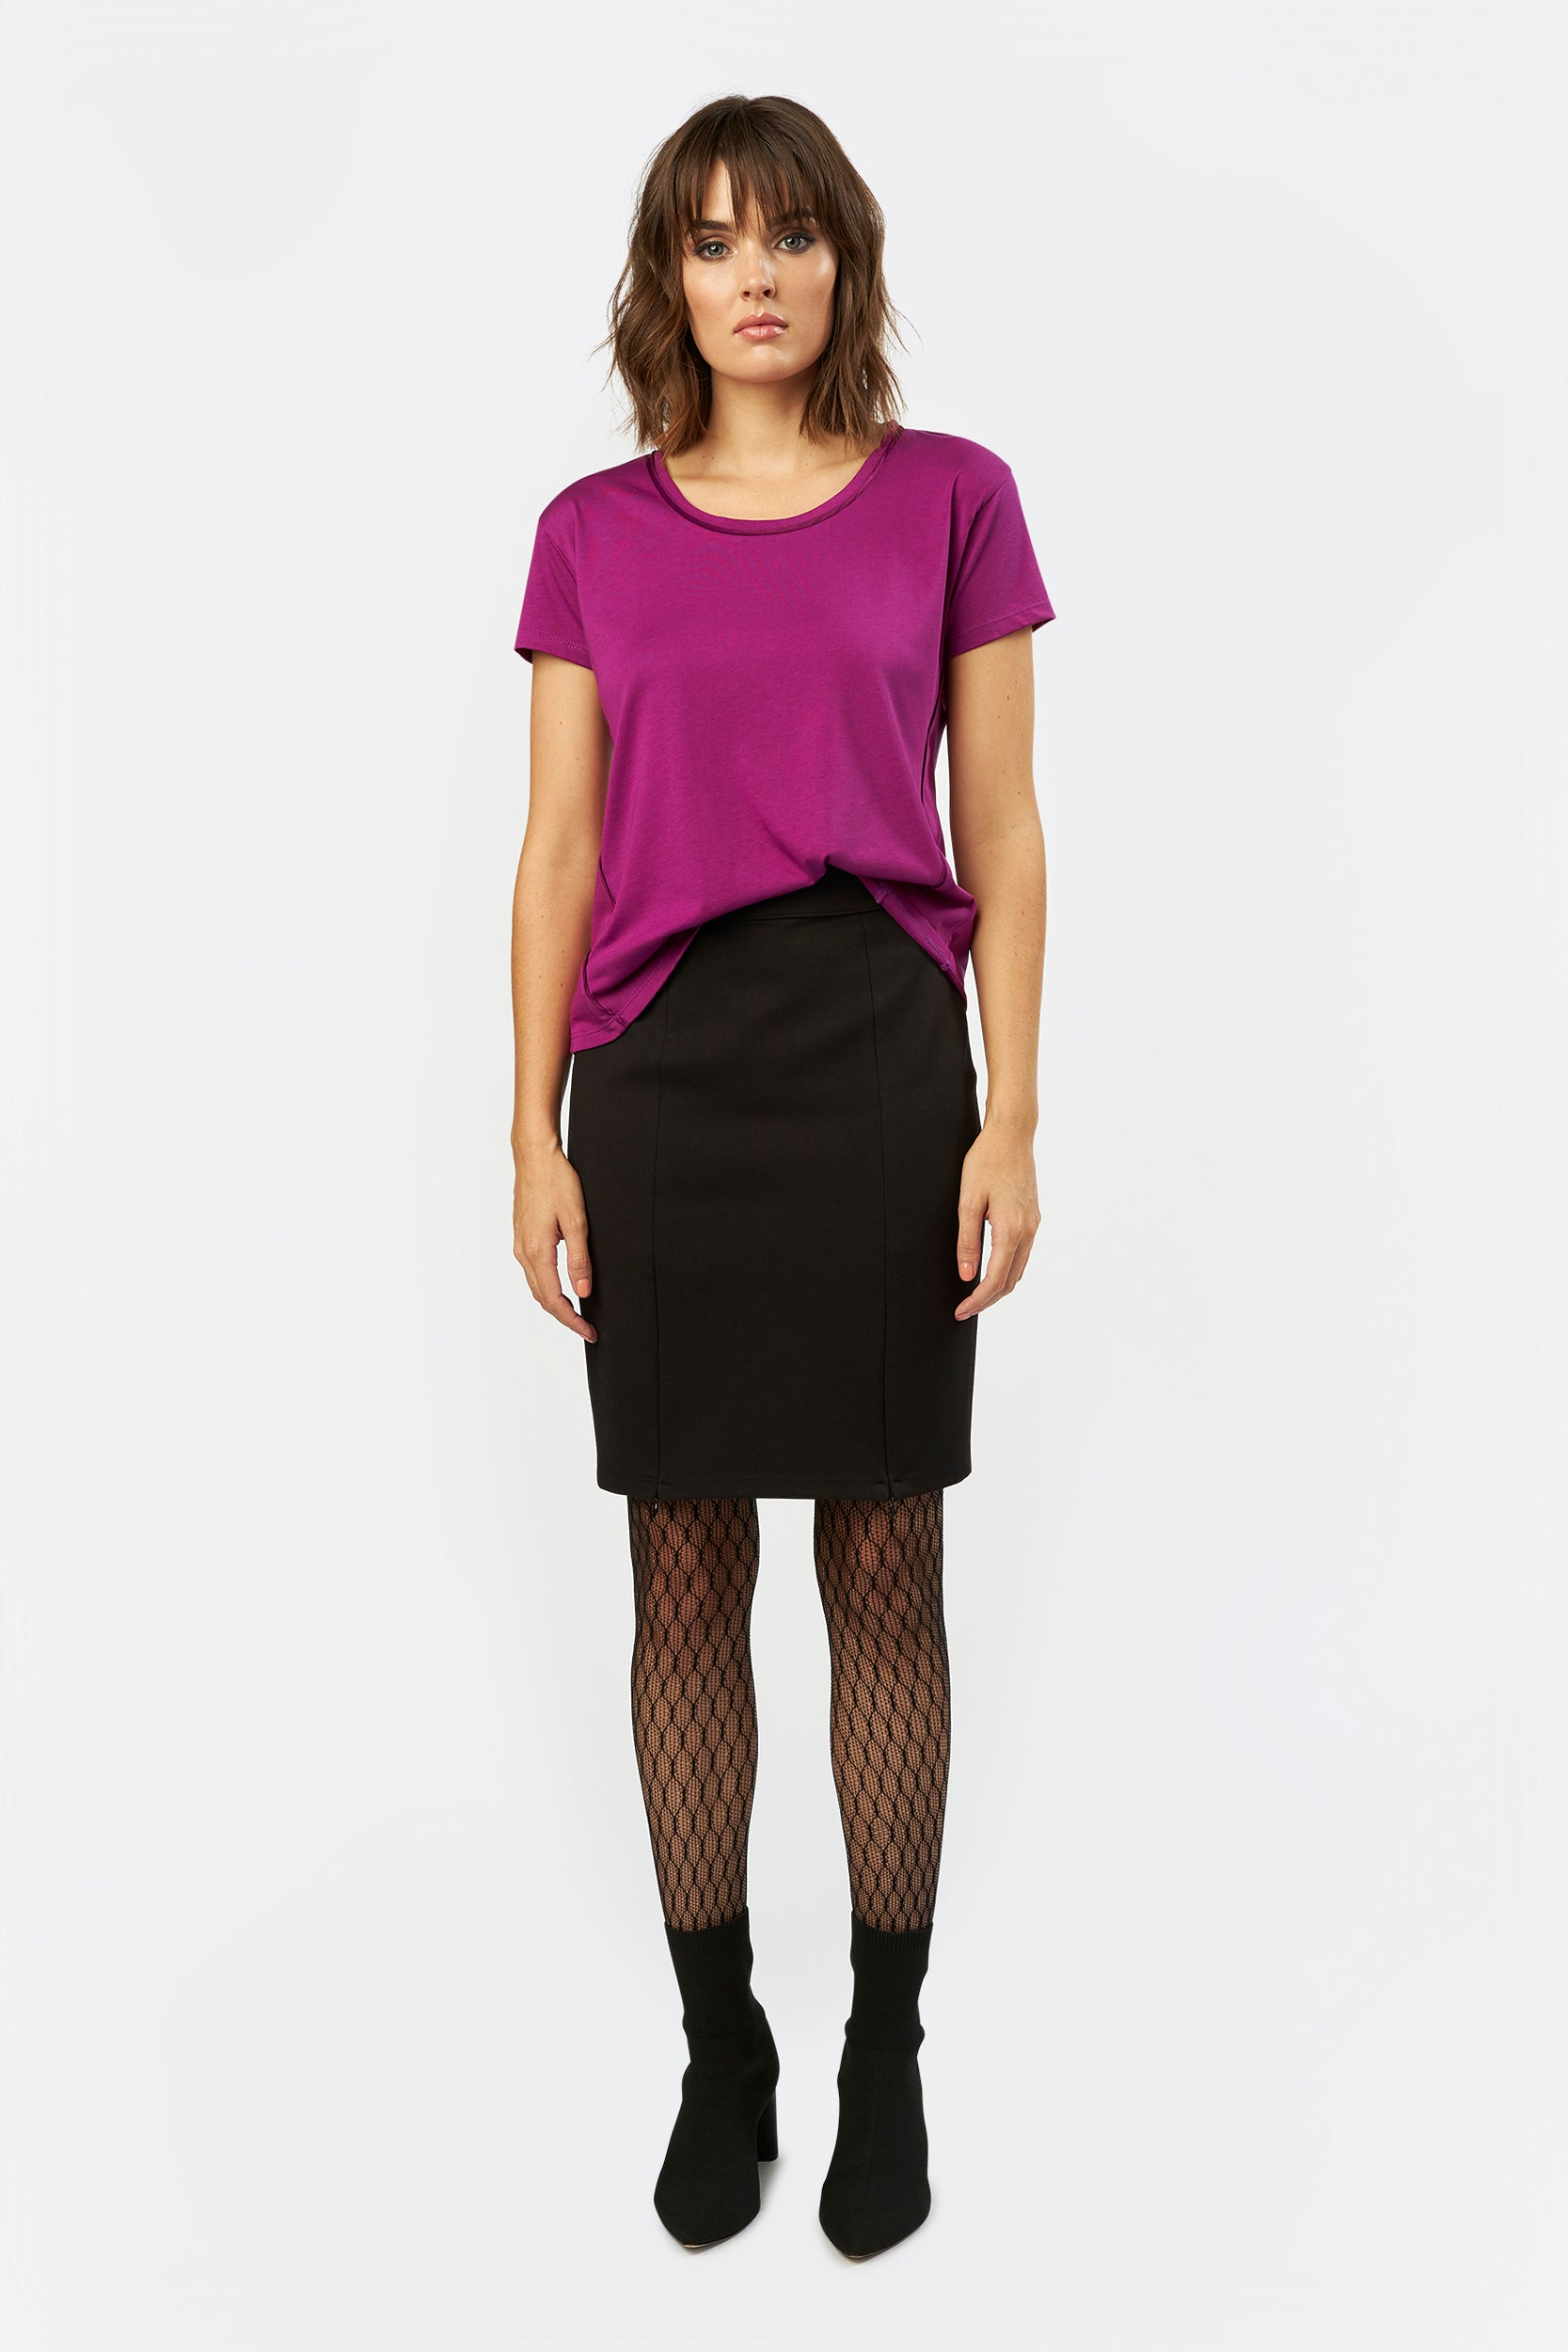 Perfect Pencil Skirt by INLARKIN in black with concealed zippers at hem and Ponte de Roma fabric for comfort